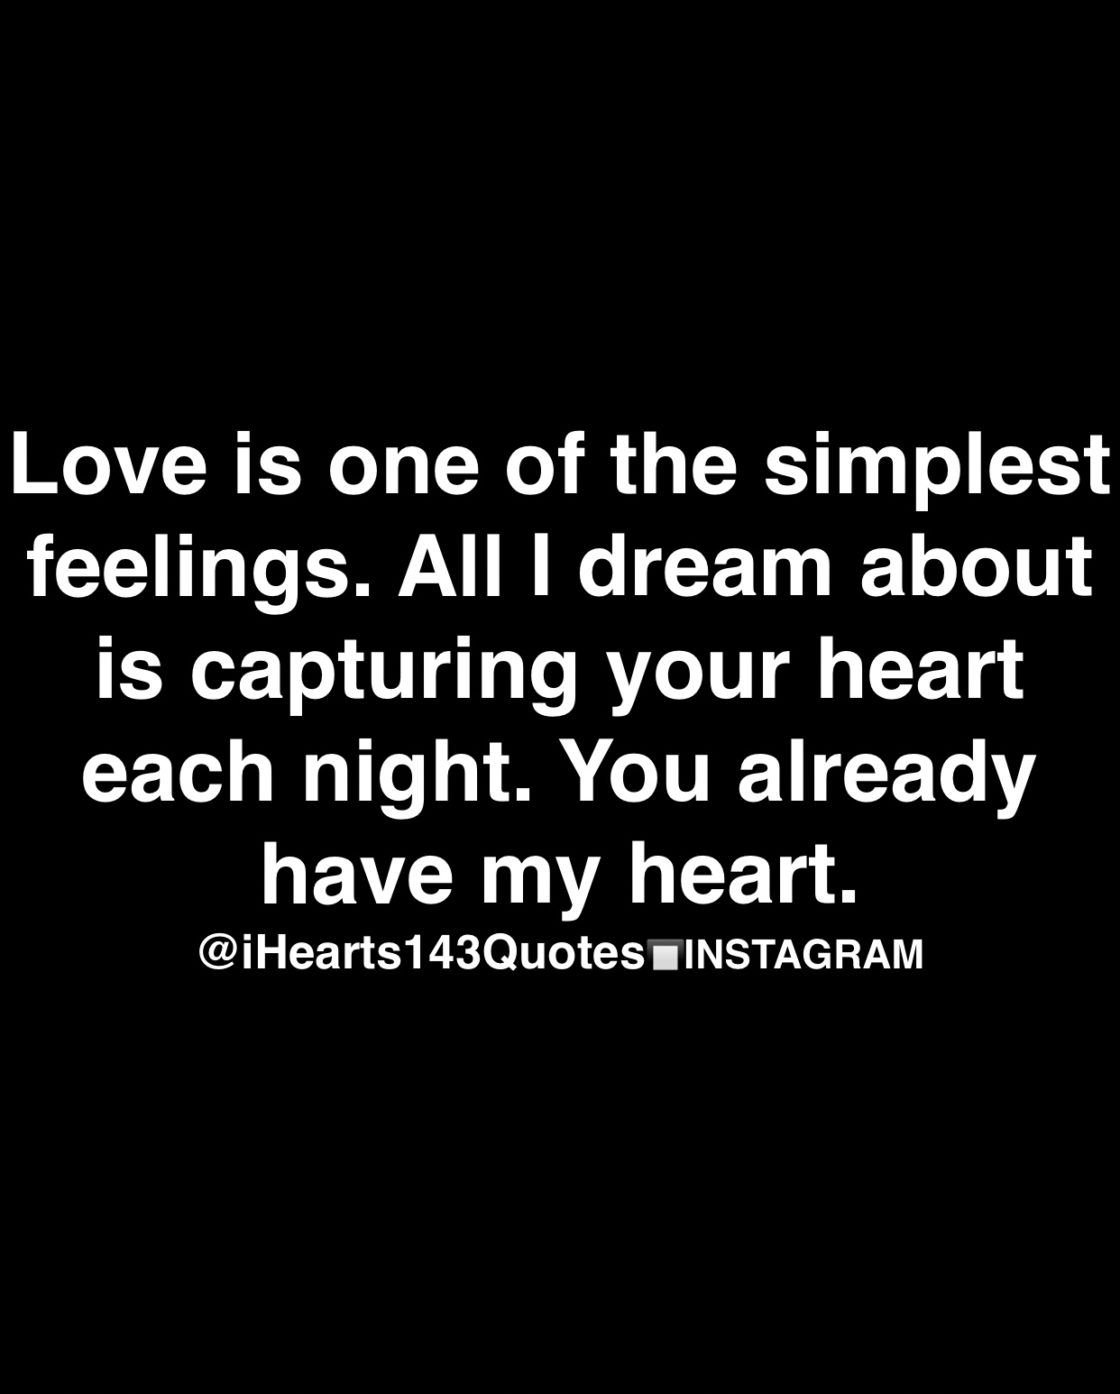 Inspirational Quotes About Love Happiness Quotes  Page 9  Ihearts143Quotes